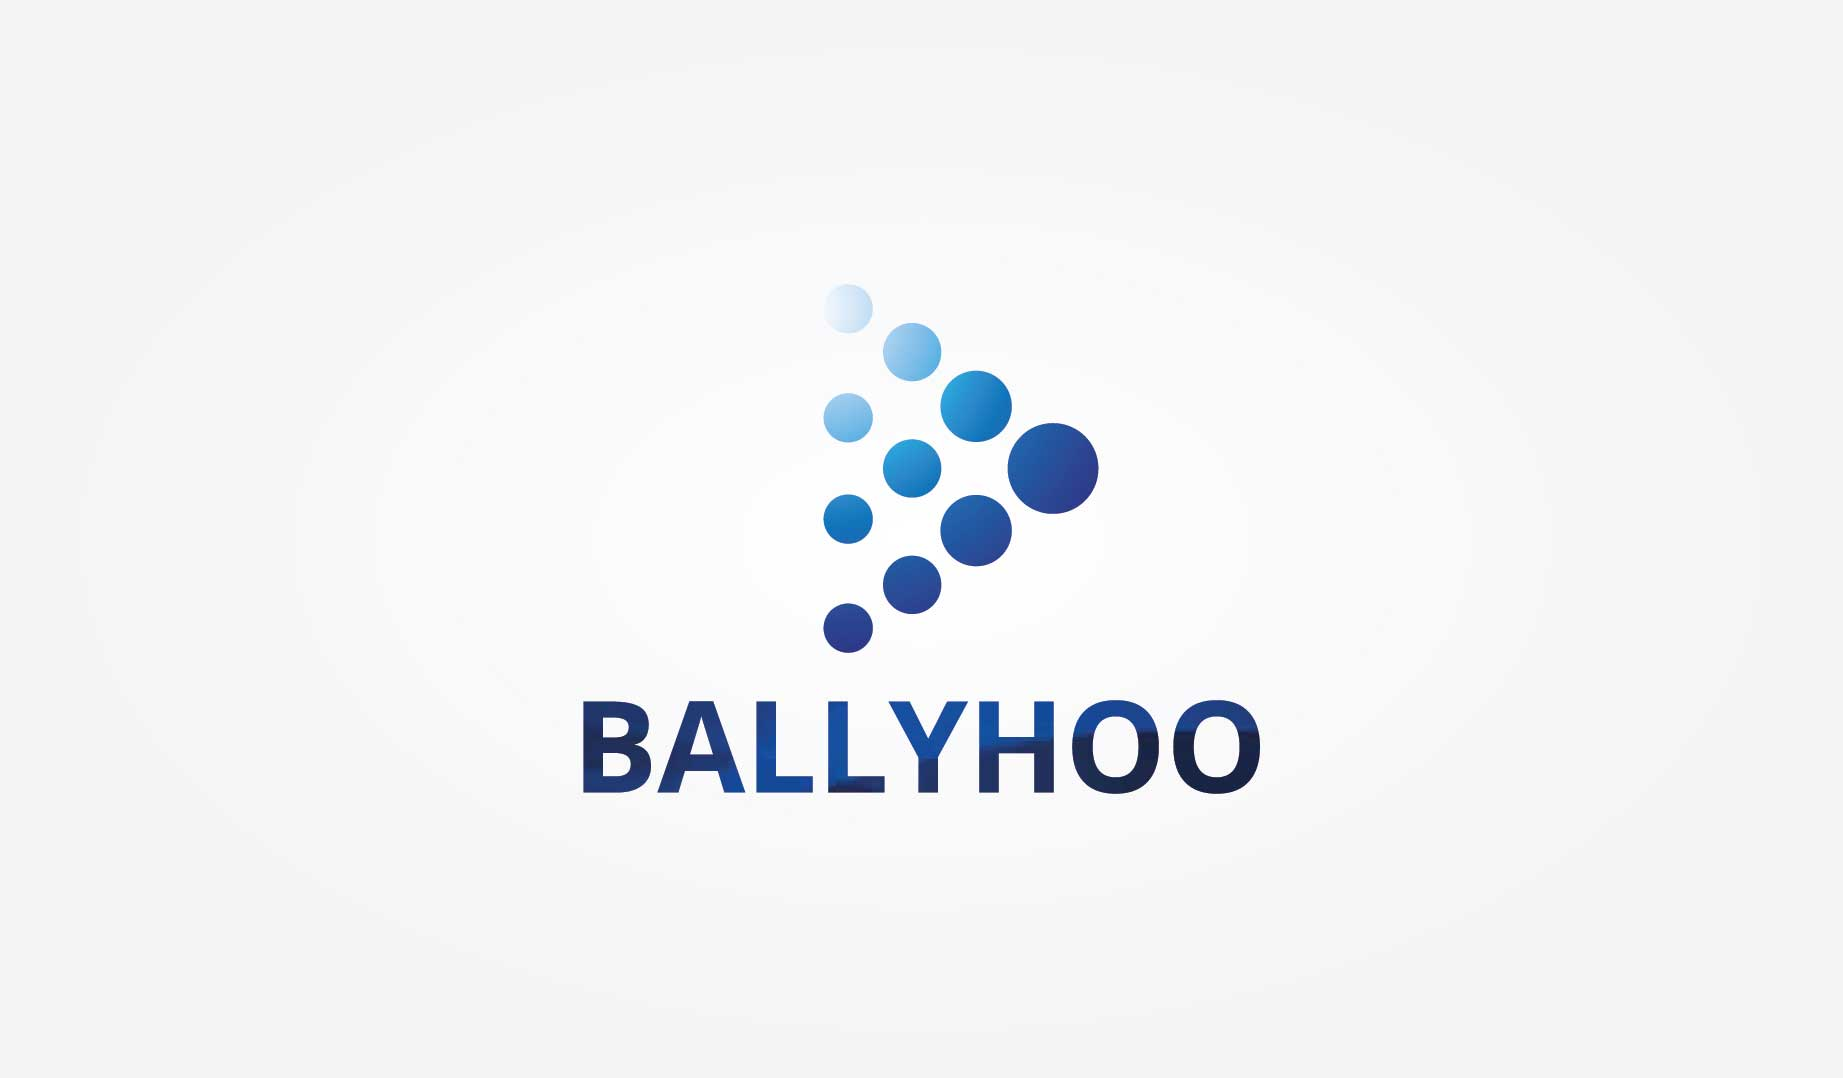 logo design service for Ballyhoo